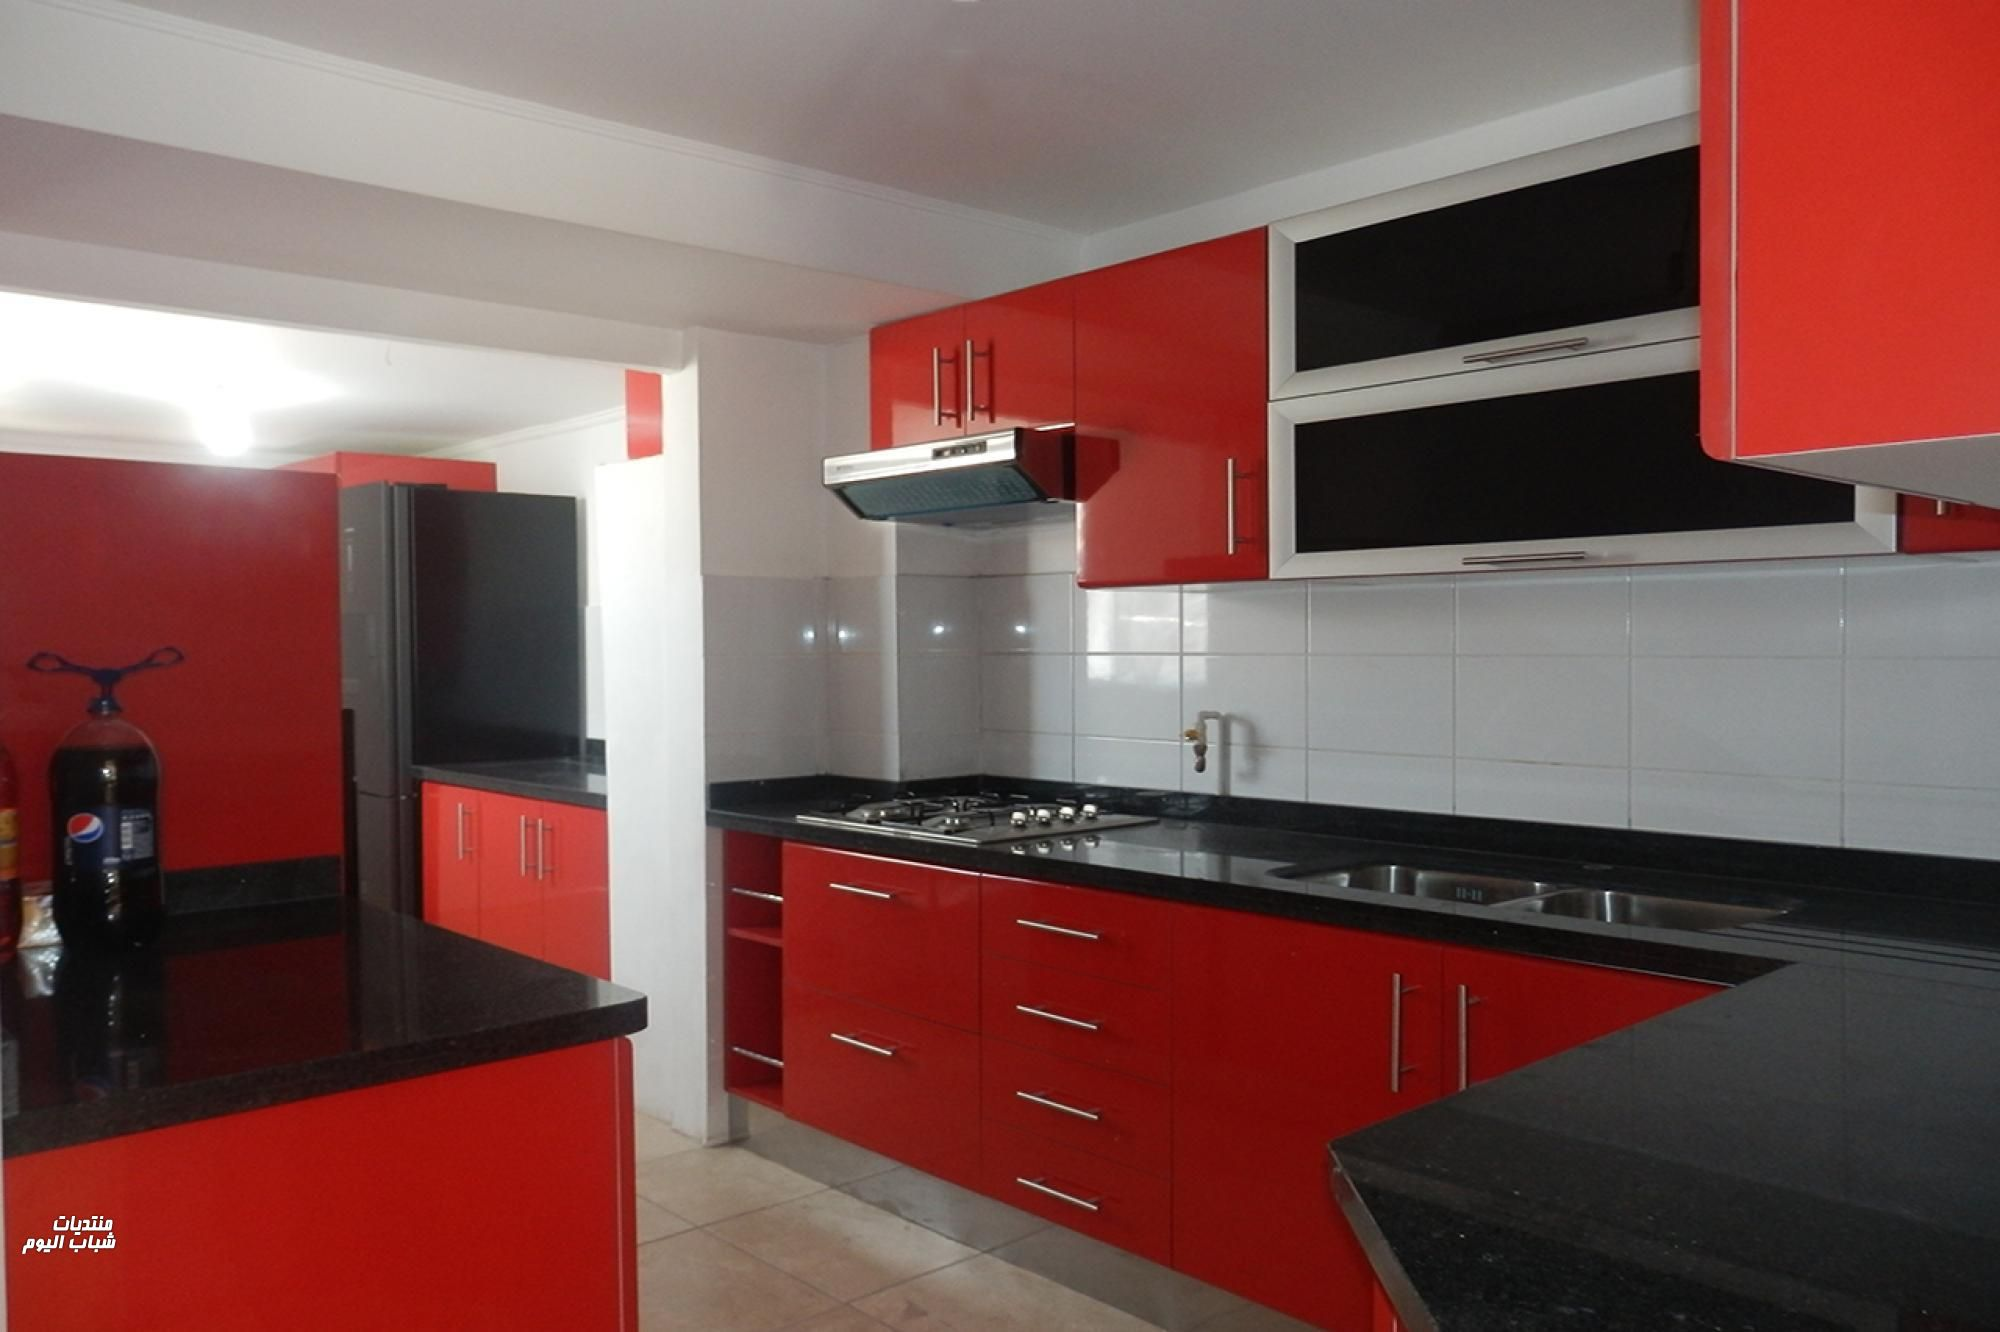 2018 2019 - Black red and white kitchen designs ...